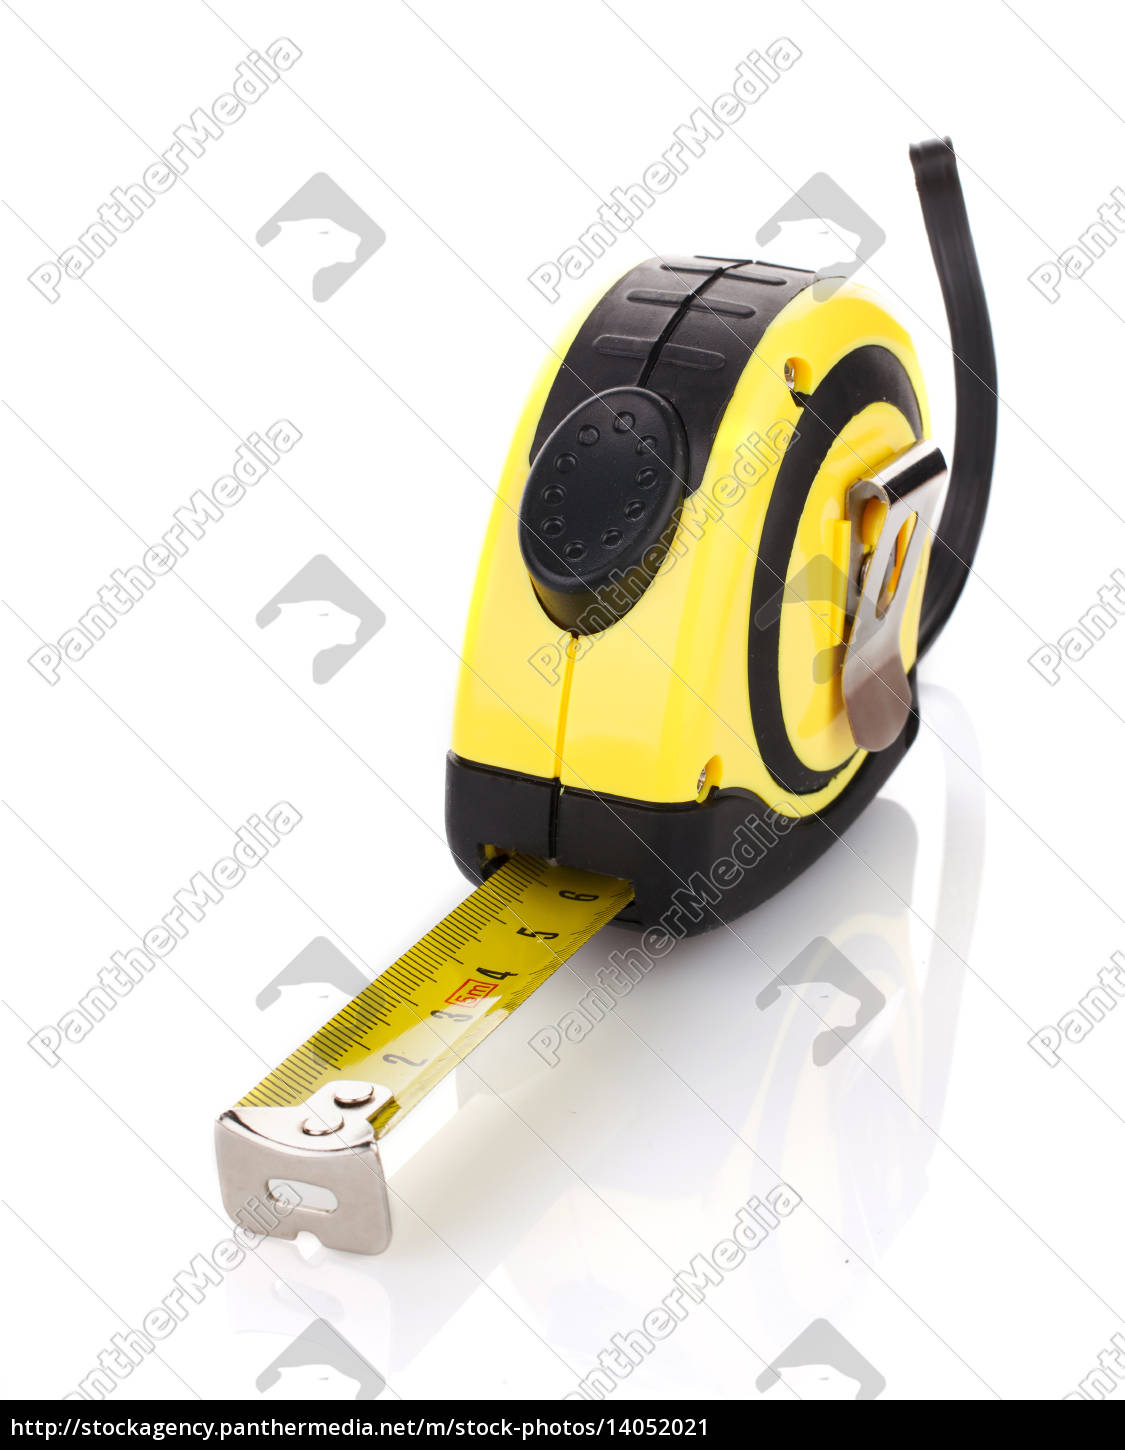 measuring, tape, for, tool, roulette - 14052021